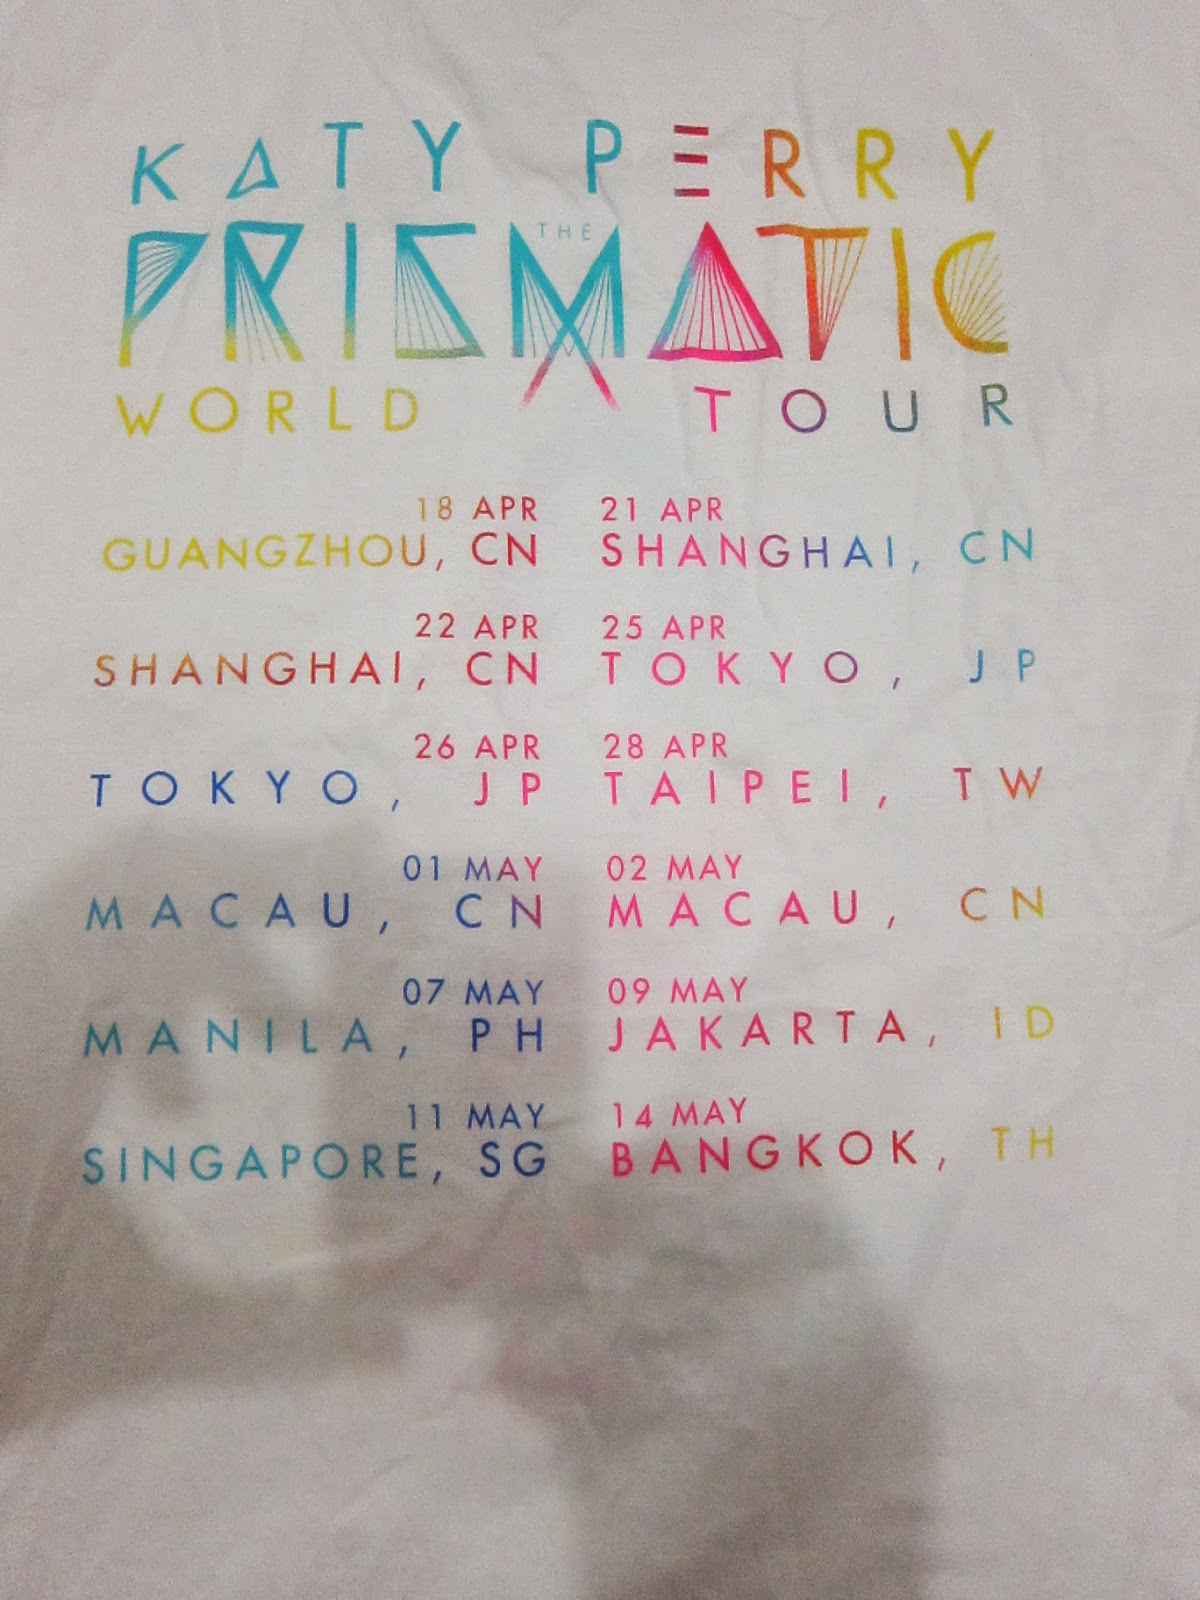 The coloring book tour setlist - Katy Perry Prismatic World Tour 2015 In Manila Love The Souvenir And Merchandise Items